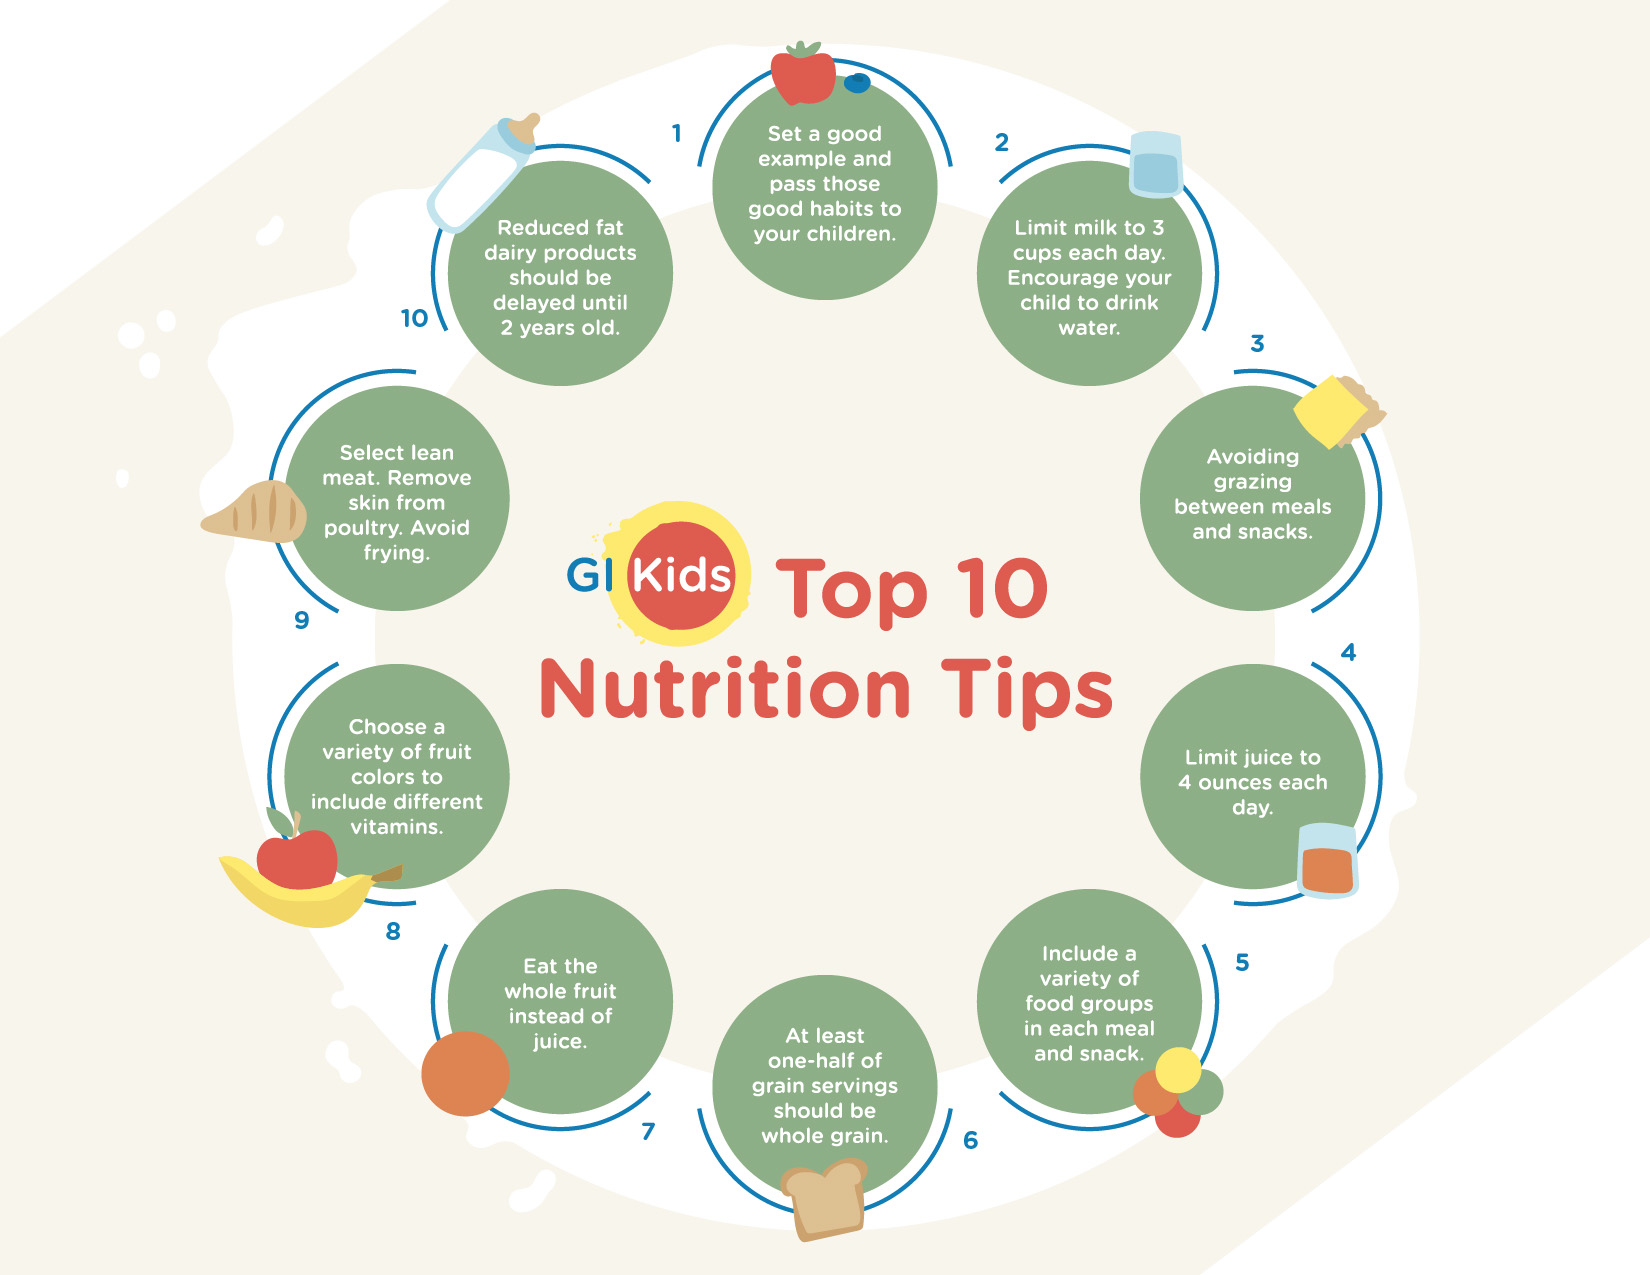 GIKids_Top10_NutritionTips_full_final.jpg